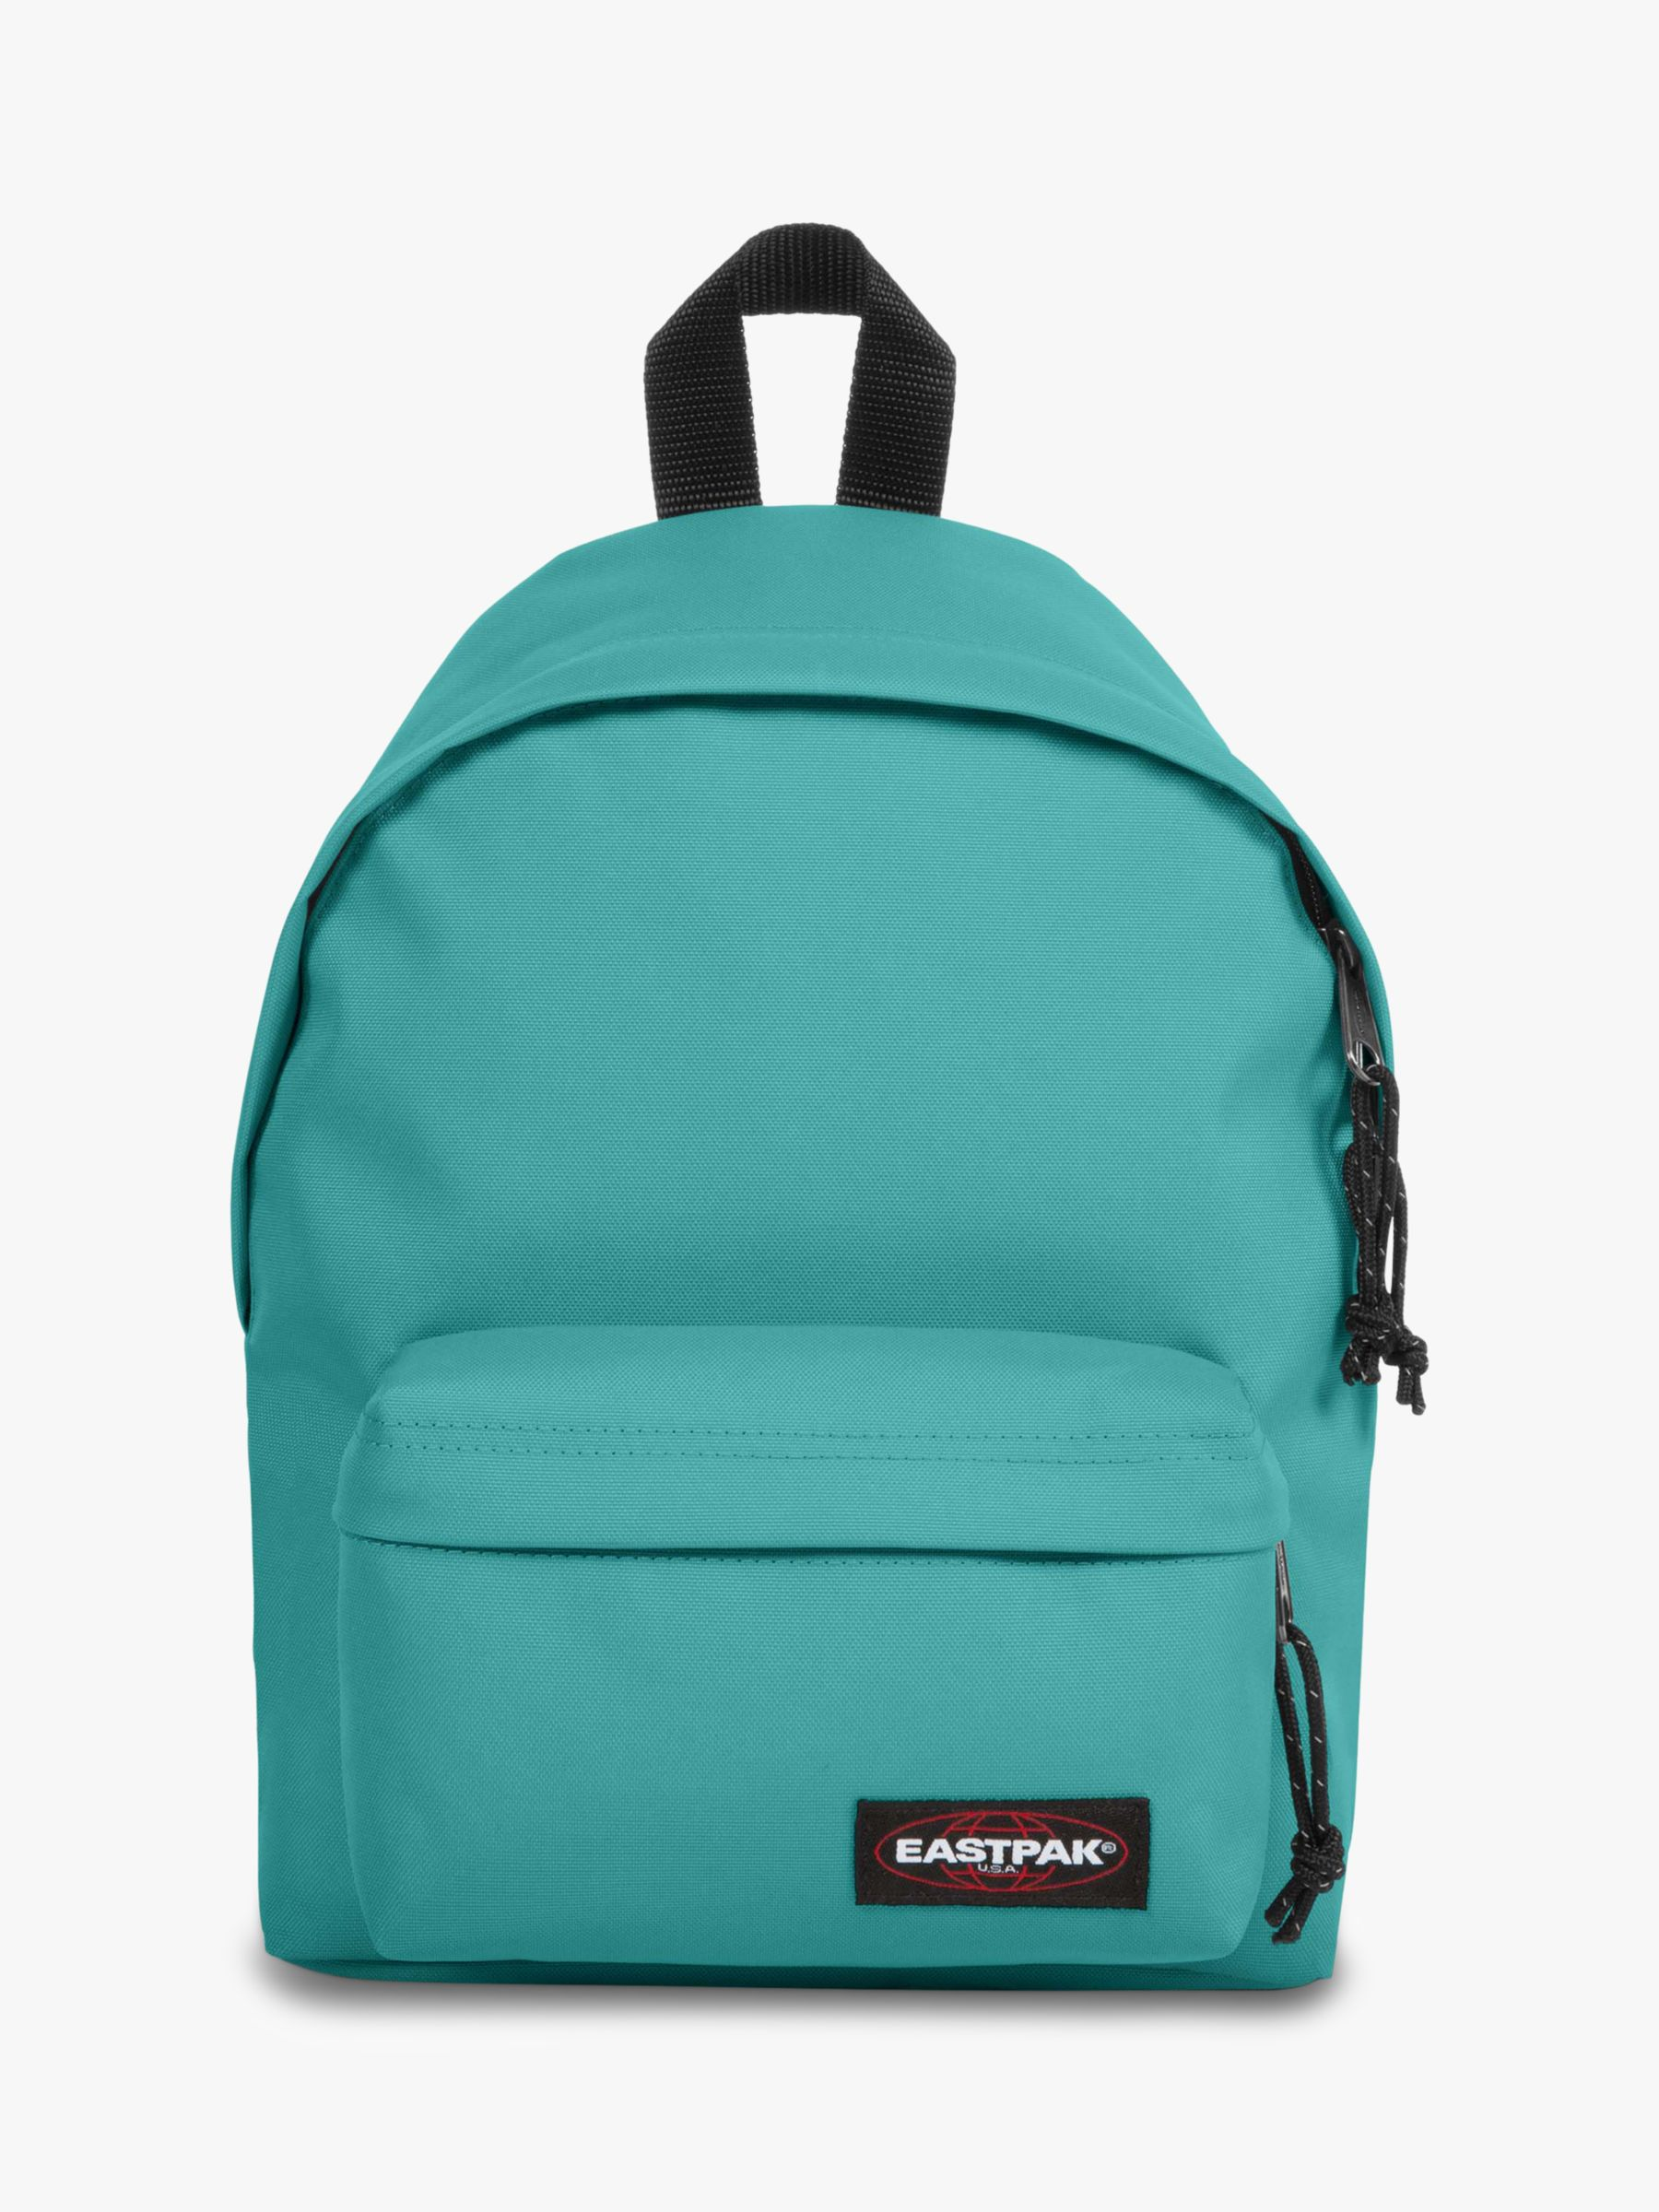 Eastpak Eastpak Orbit Backpack